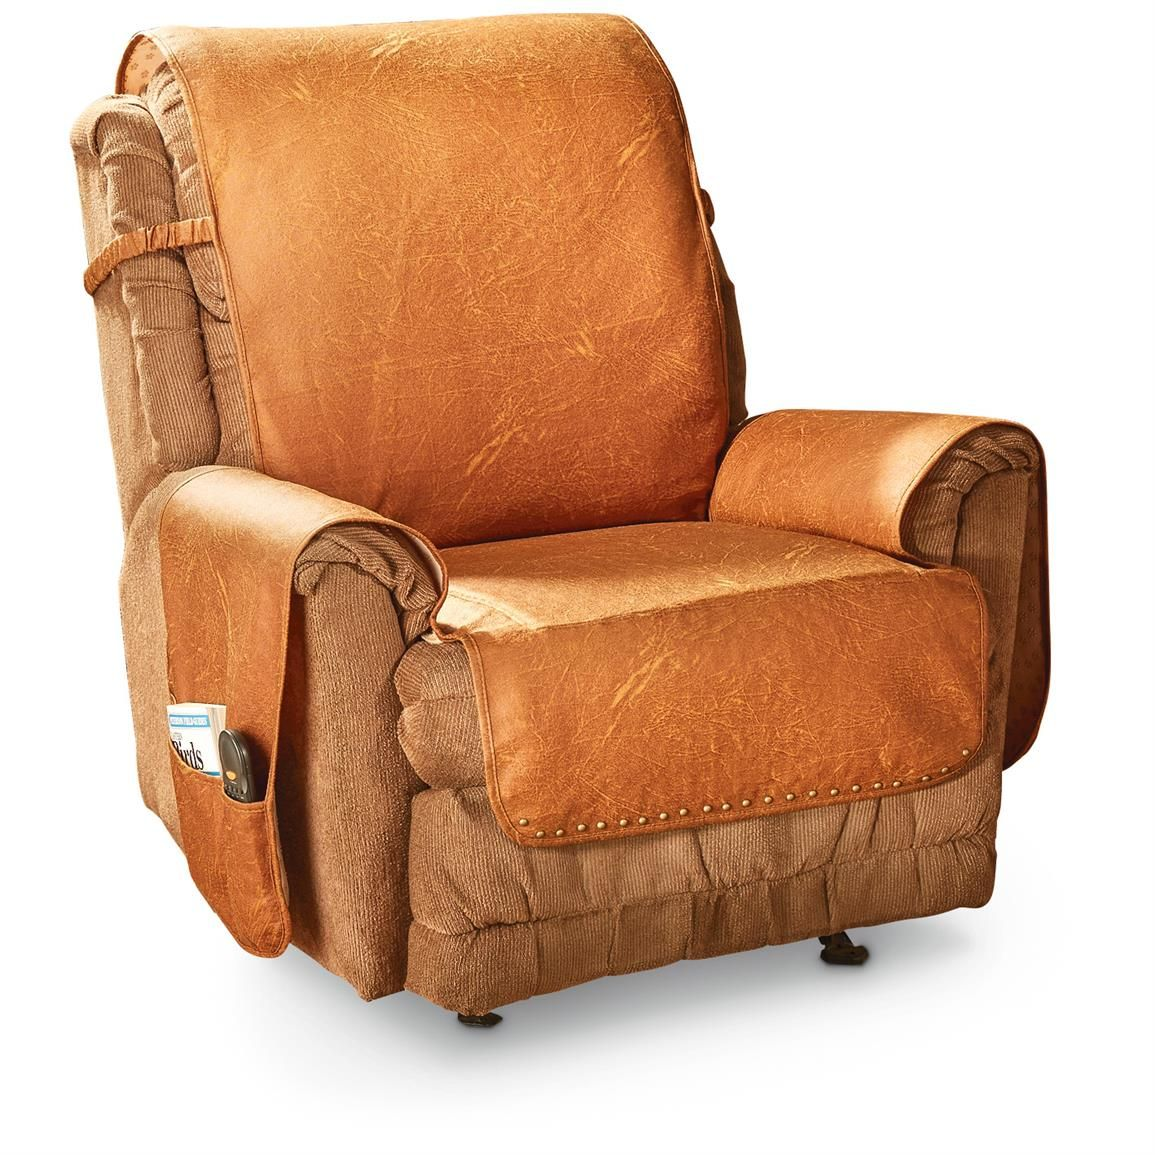 Faux Leather Recliner Cover Arm chair covers